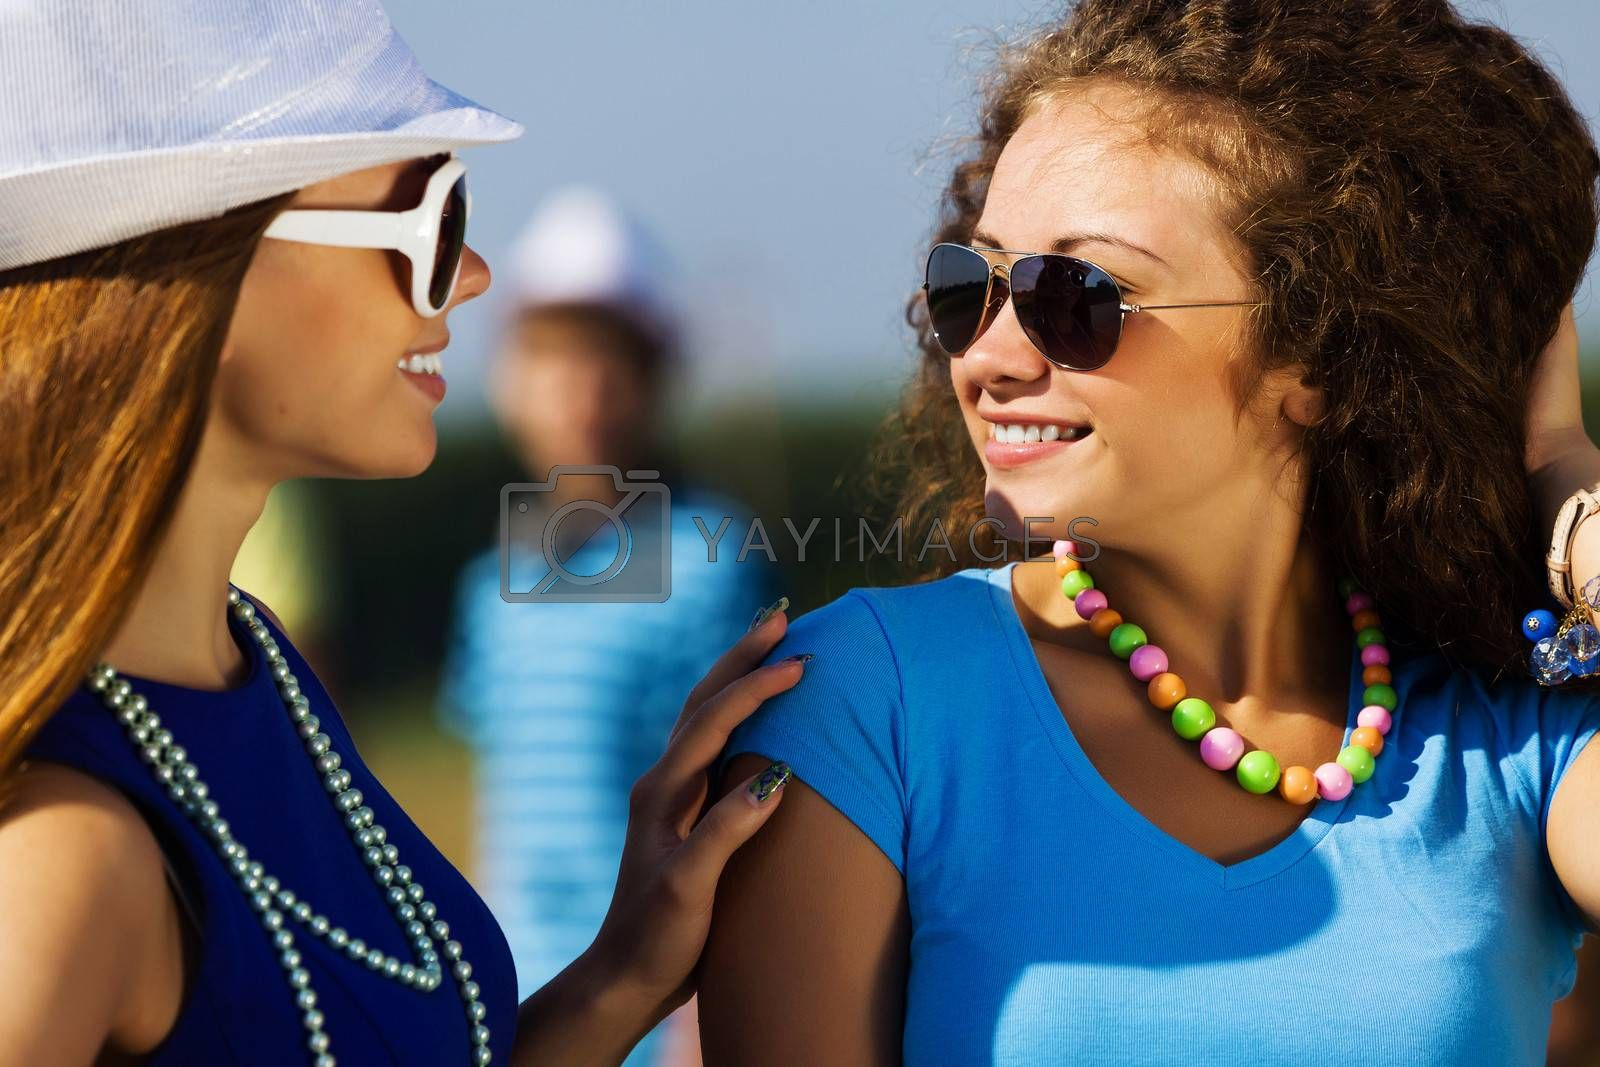 Royalty free image of Youth and friendship by sergey_nivens